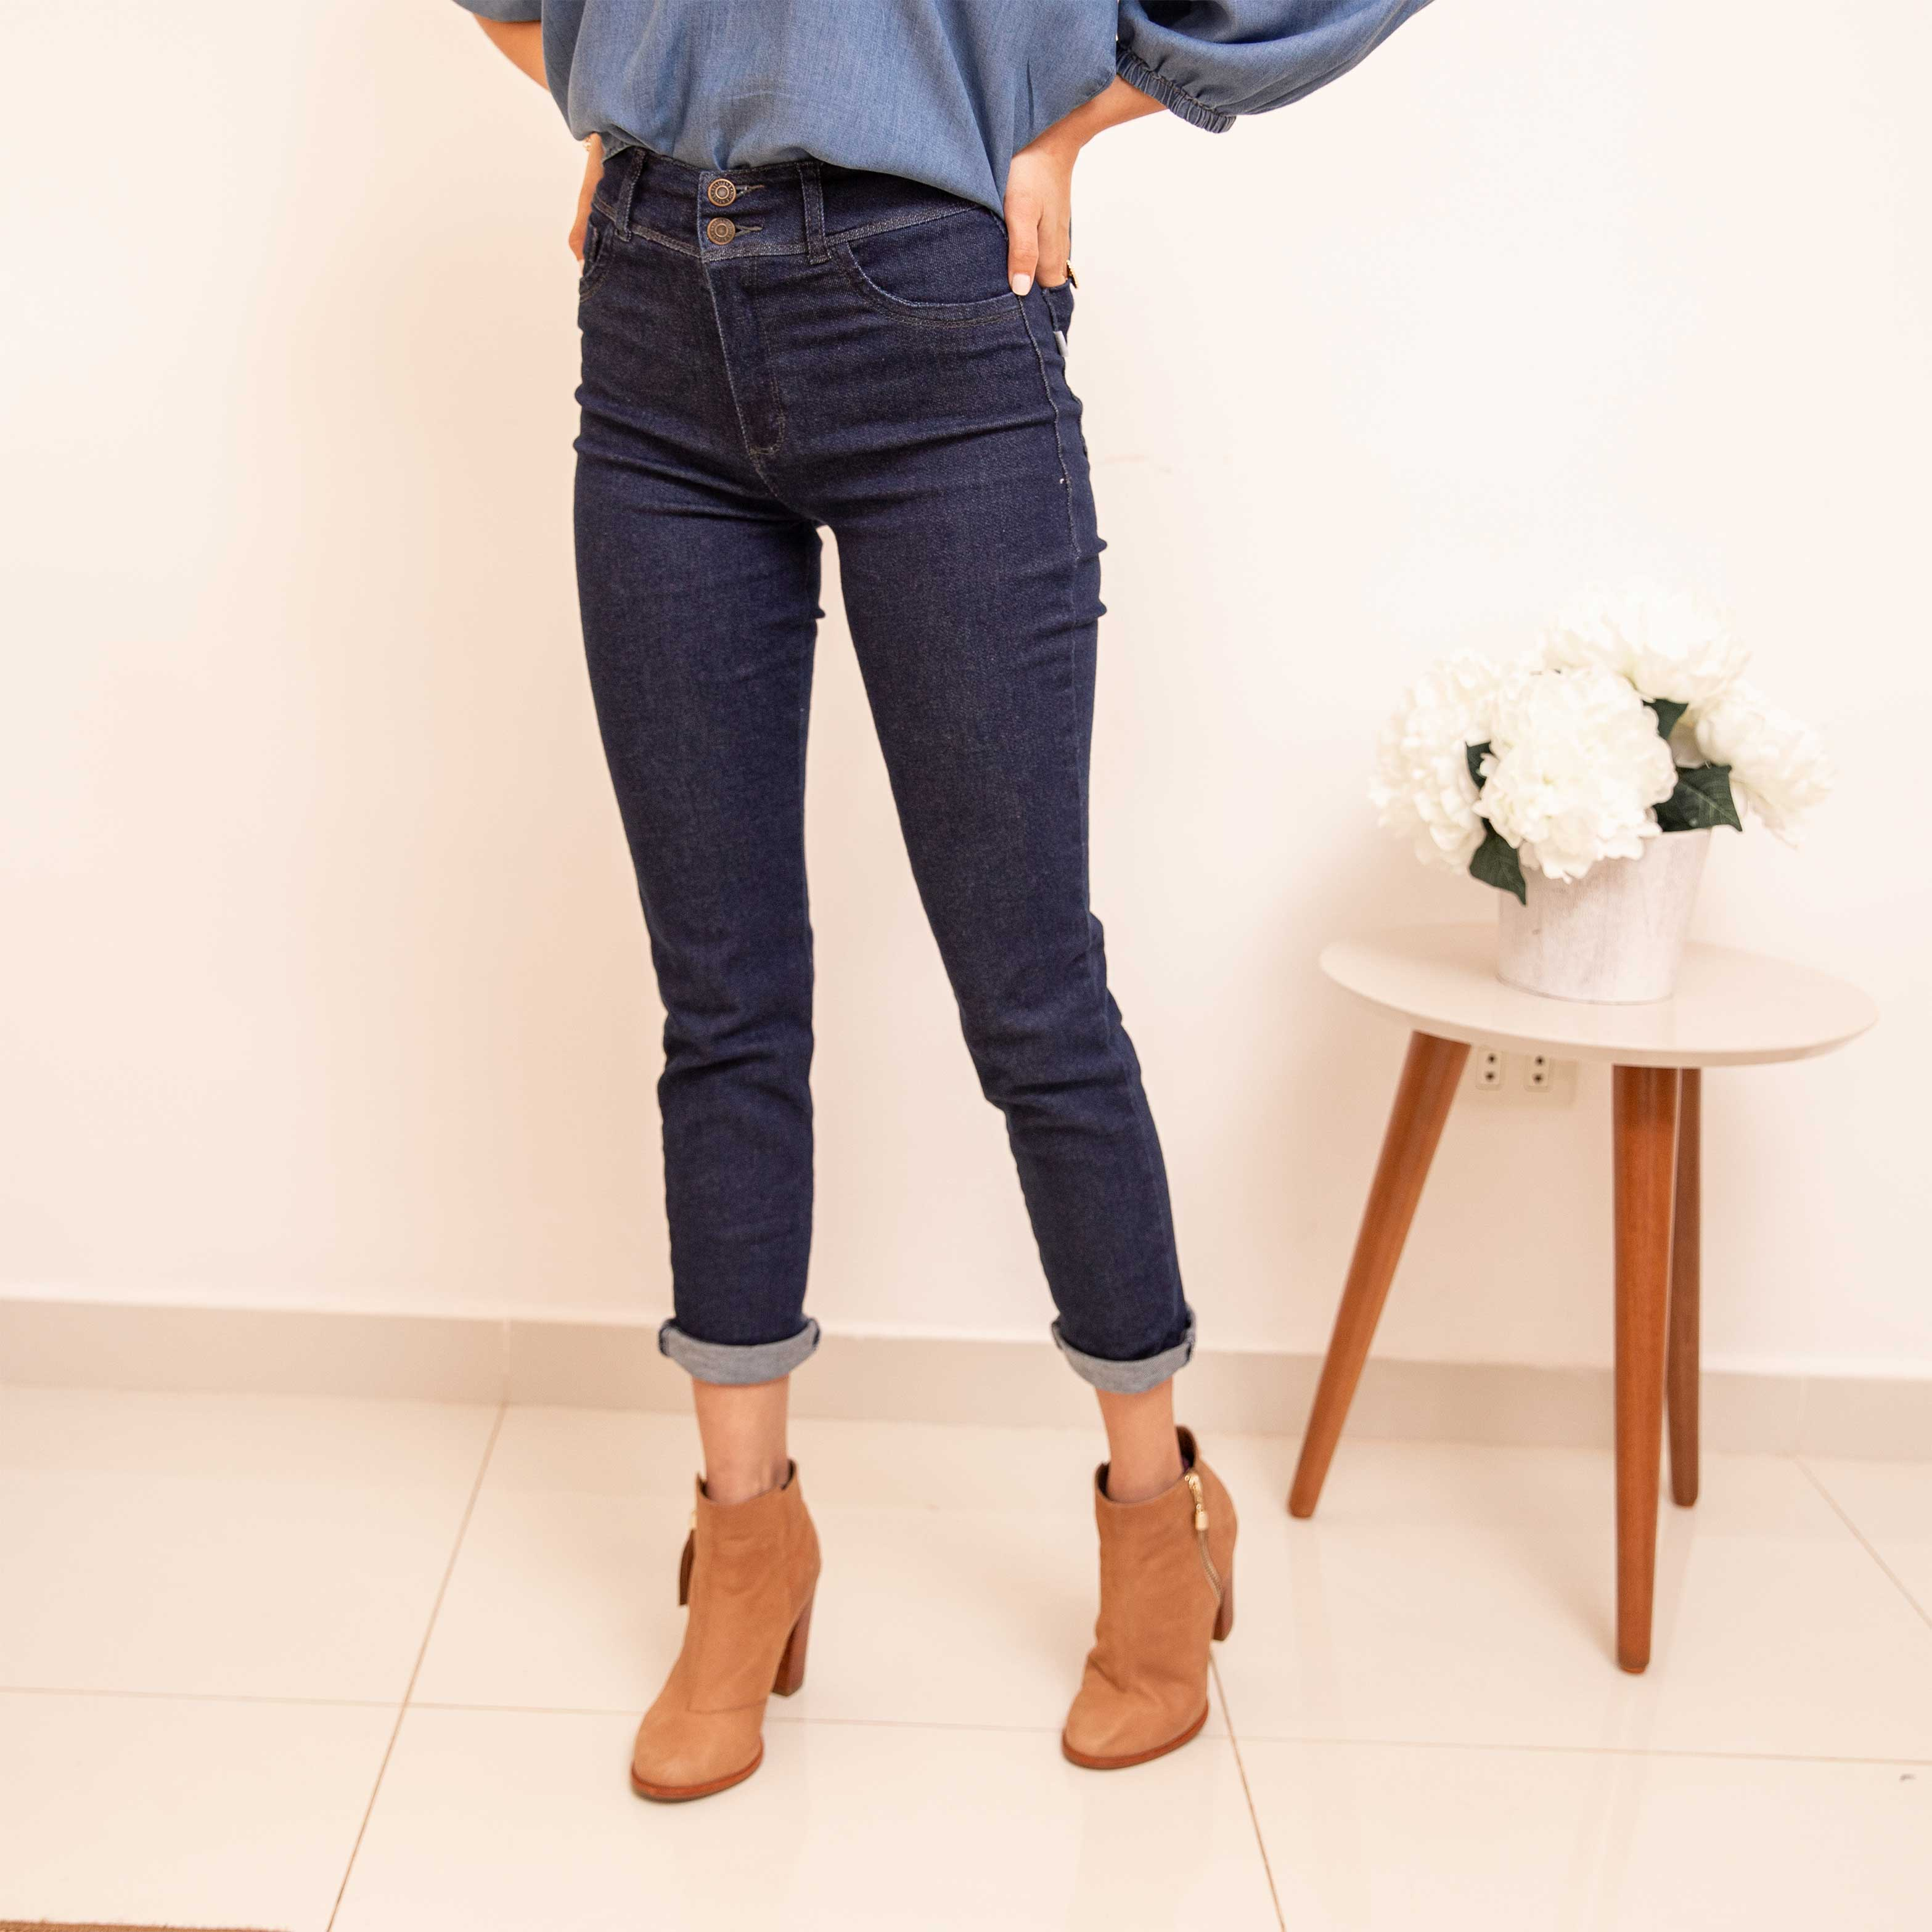 Cropped Jeans Cod. 1210128